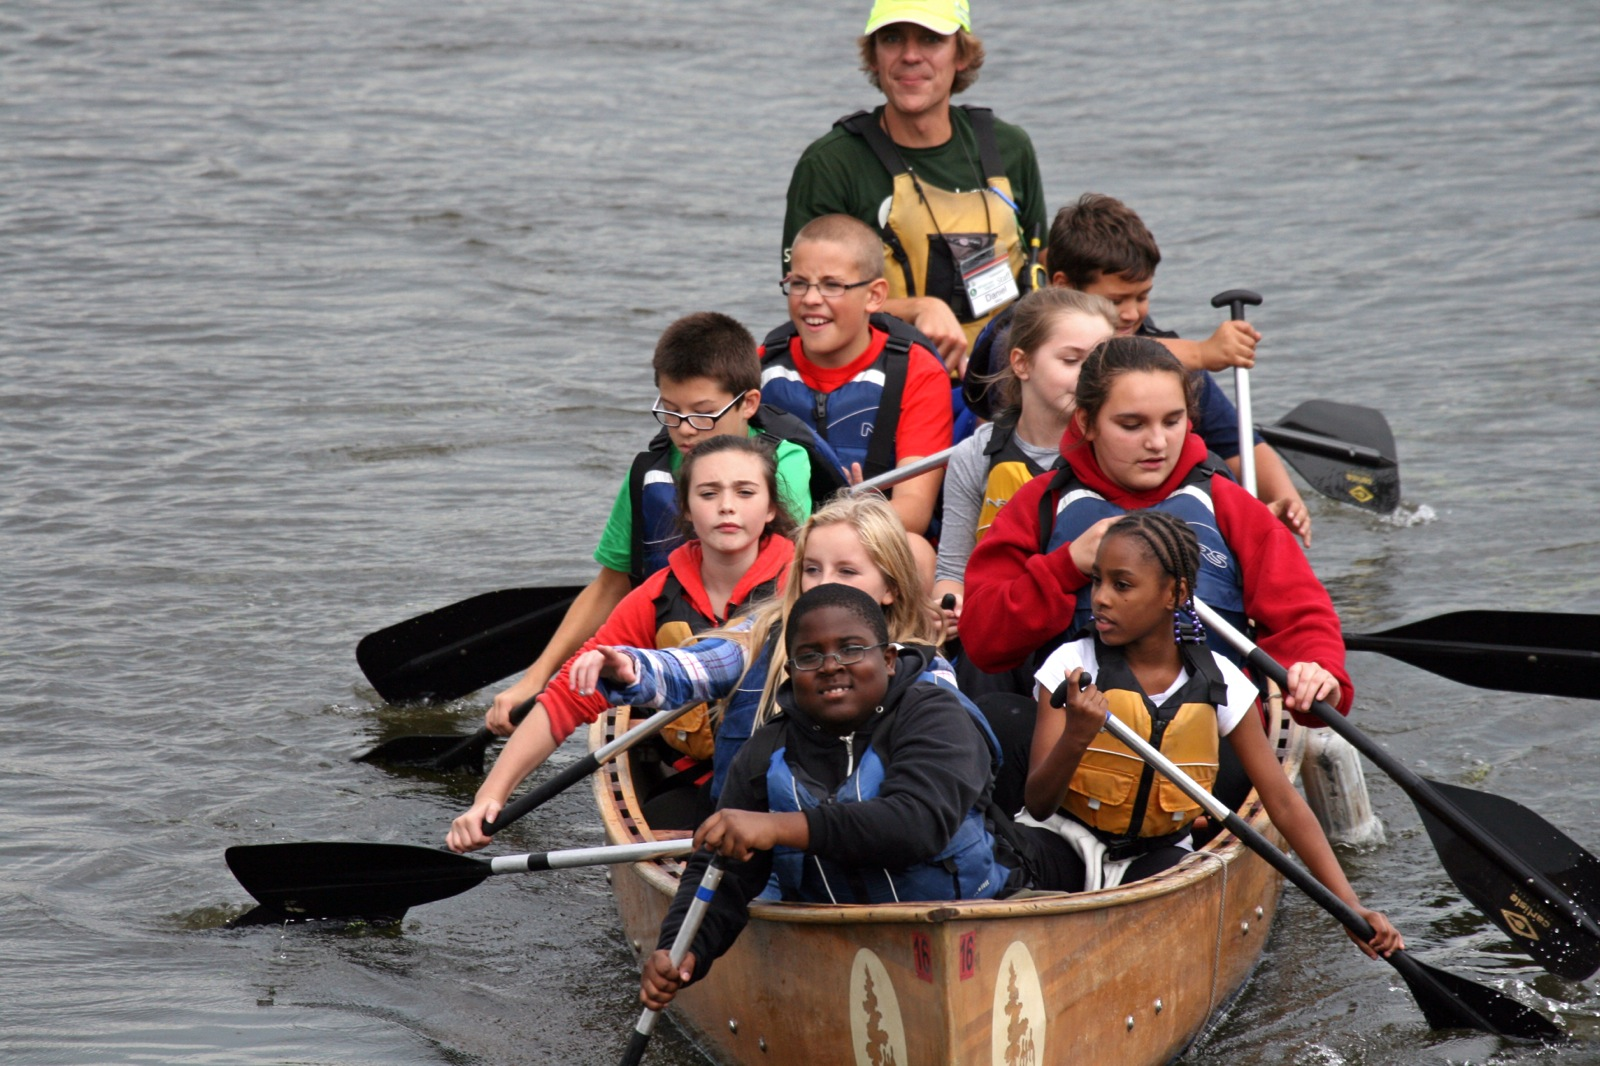 an action shot of 9 youth and a staff member paddling their canoe on the lake